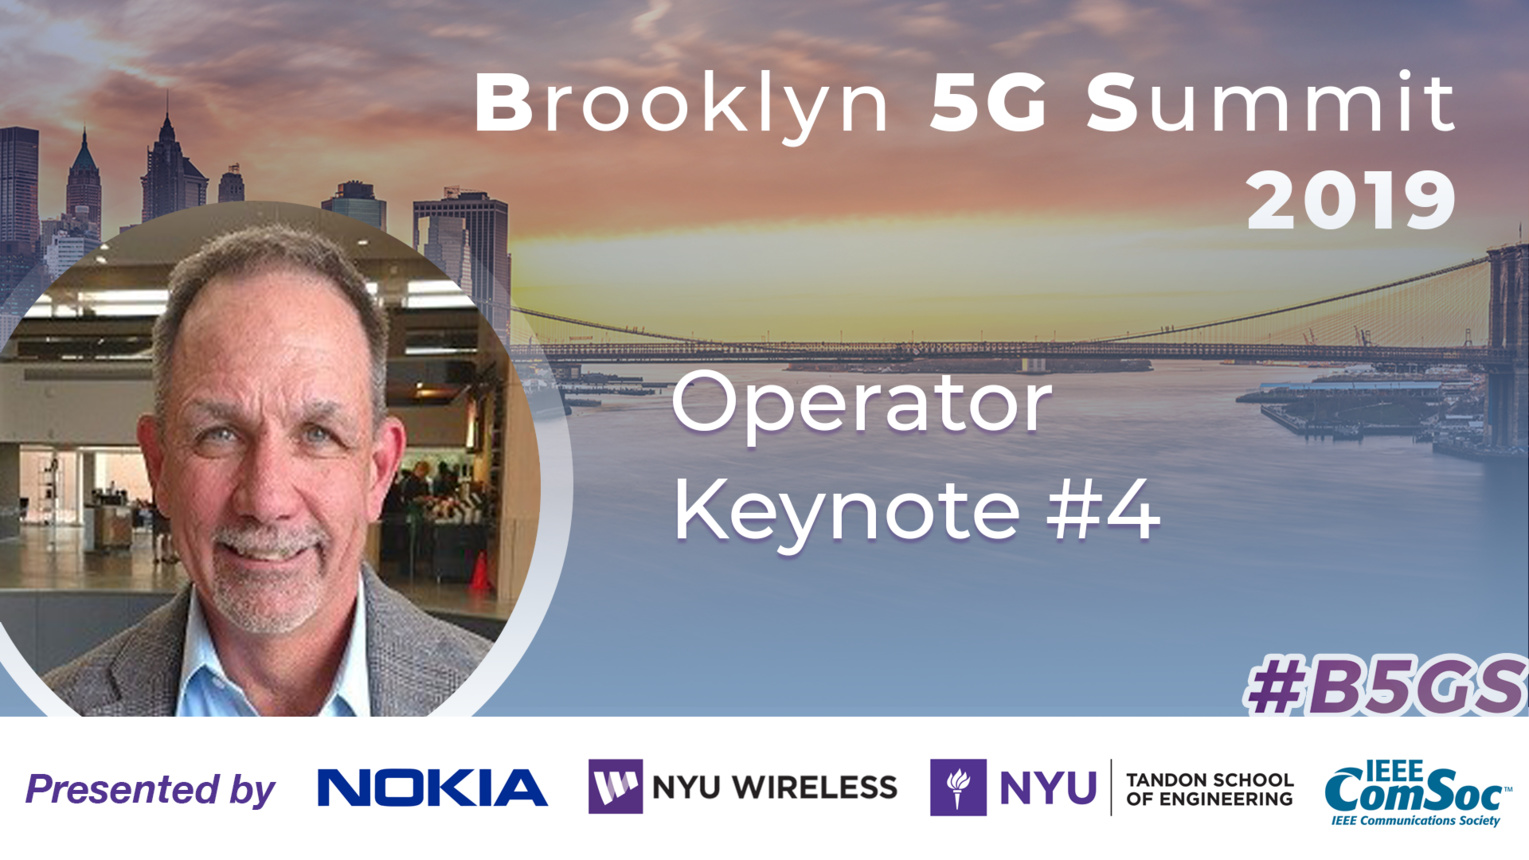 Operator Keynote: Bill Stone - B5GS 2019